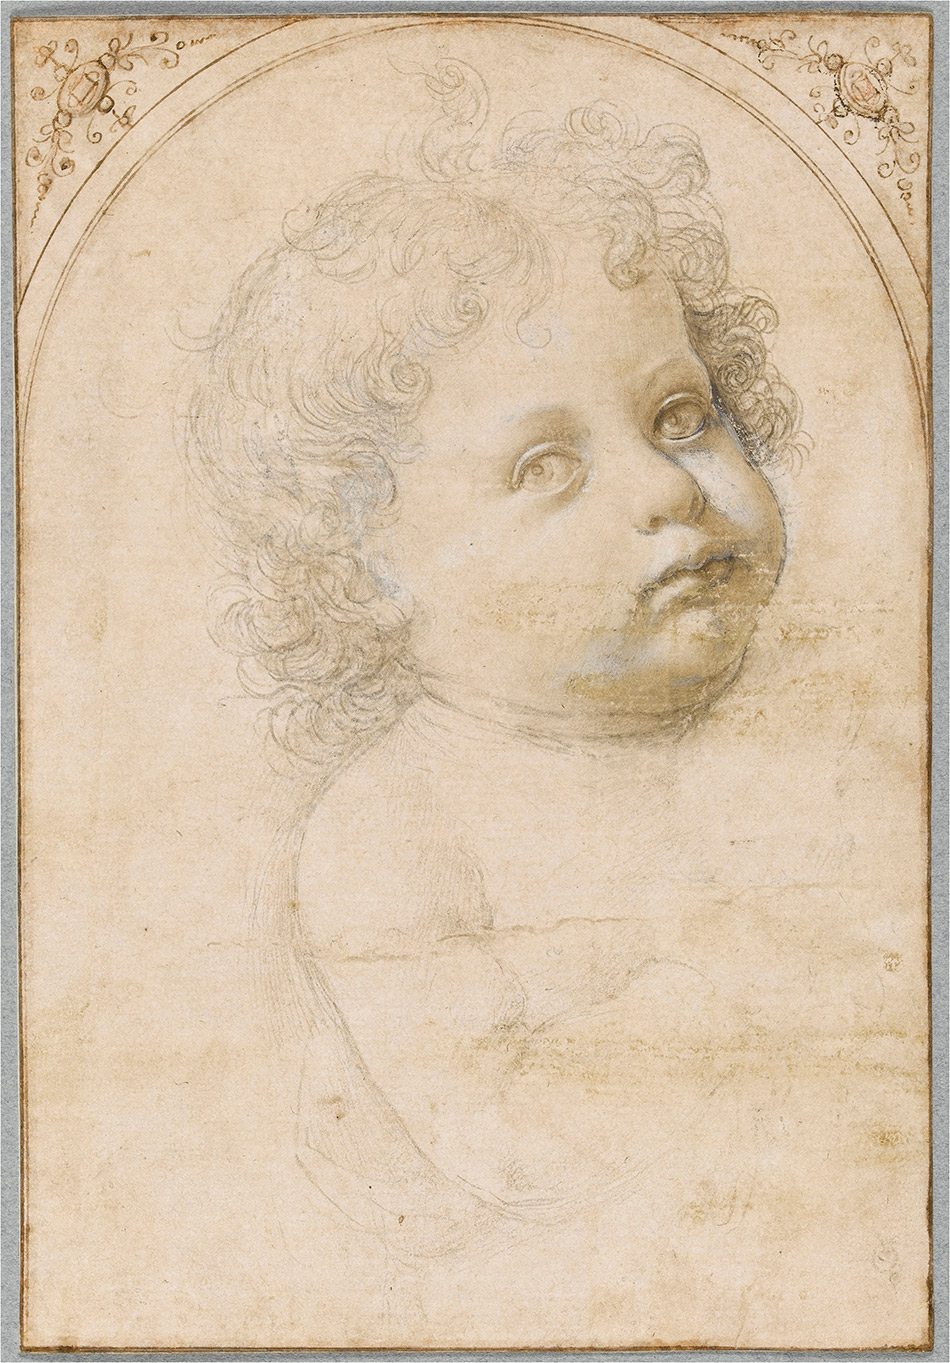 Head of a baby (Study for an Infant Christ?). Verrocchio, Andrea del (Italian, c.1435-7 -1488). Black chalk, silverpoint heightened with white on prepared paper, the frame with arched top, drawn in pen and ink with touches of red chalk, height 229 mm, width 158 mm.